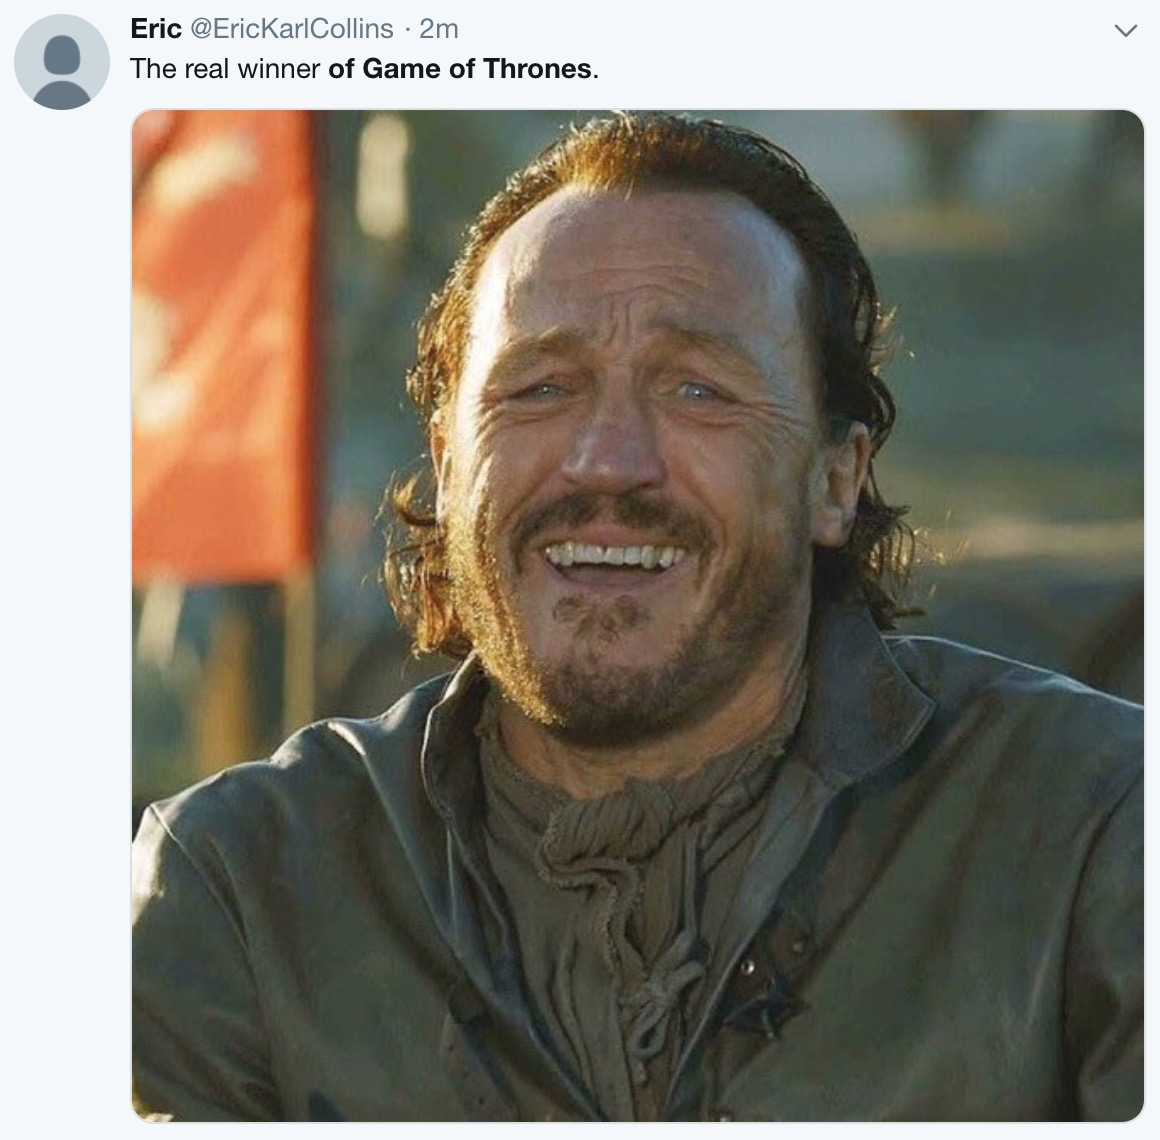 78 39 game of thrones 39 final episode memes and reactions wow gallery ebaum 39 s world - Game of thrones 21 9 ...